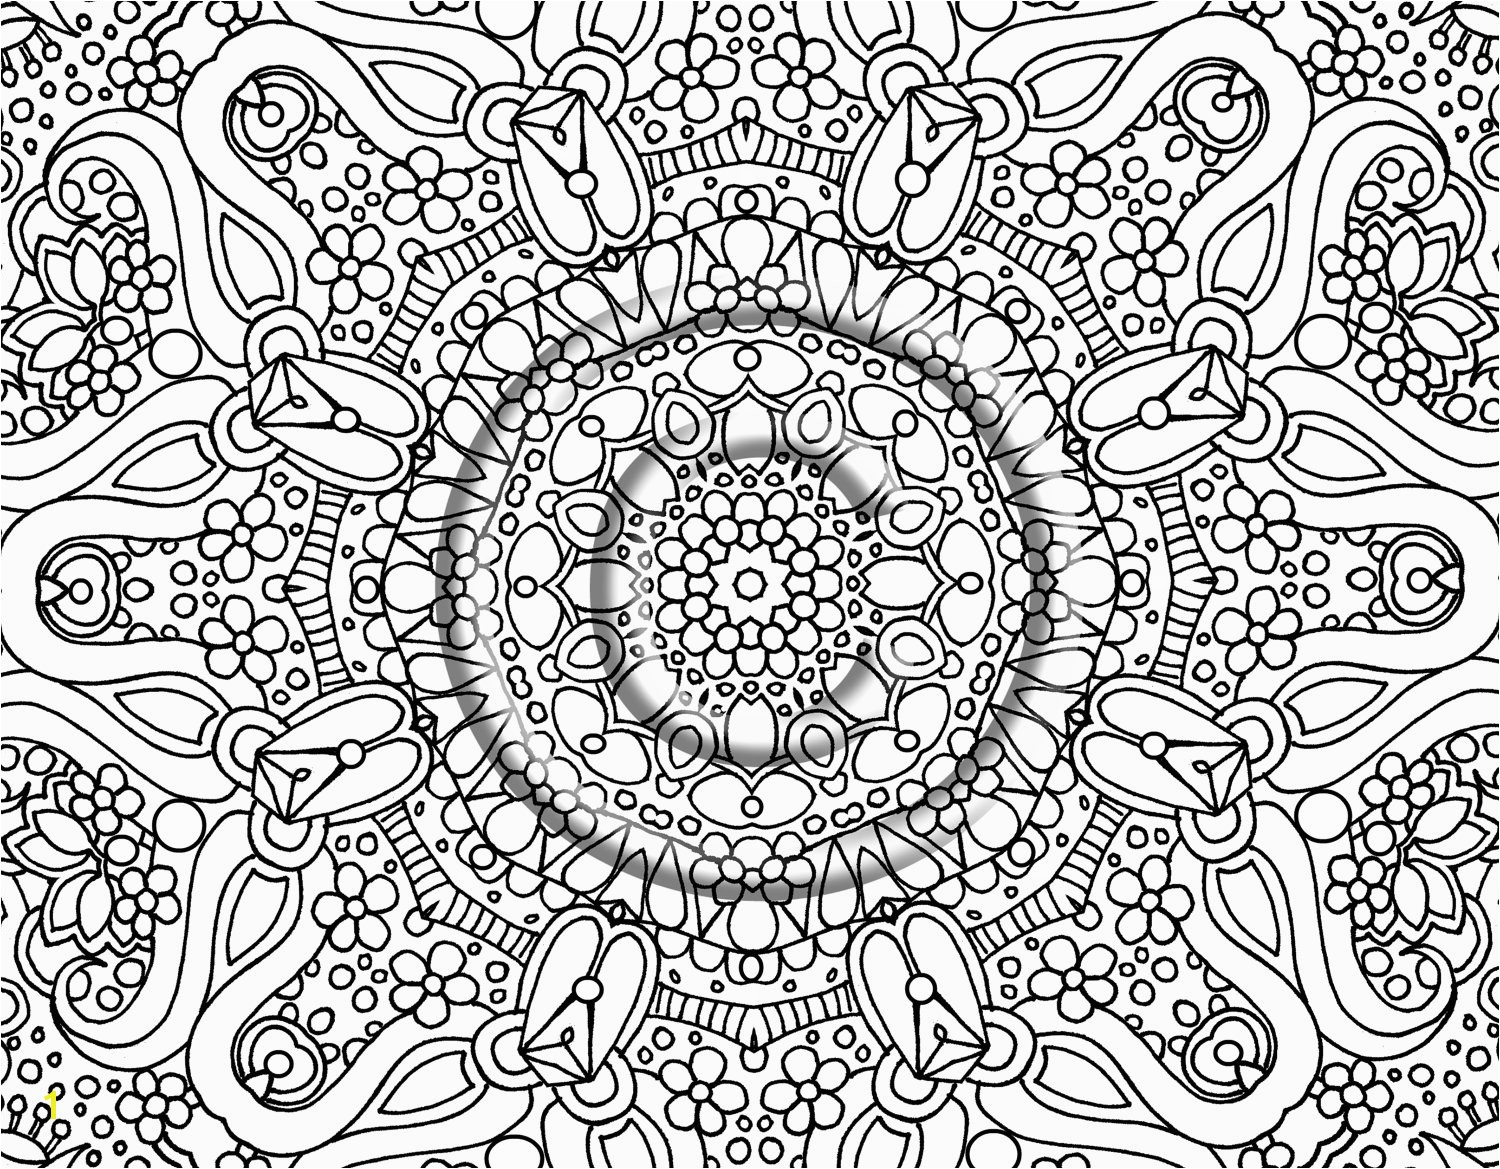 super hard abstract coloring pages for adults 25d printable difficult coloring pages montenegroplaze me ribsvigyapan adult coloring pages hearts abstract printable adult coloring